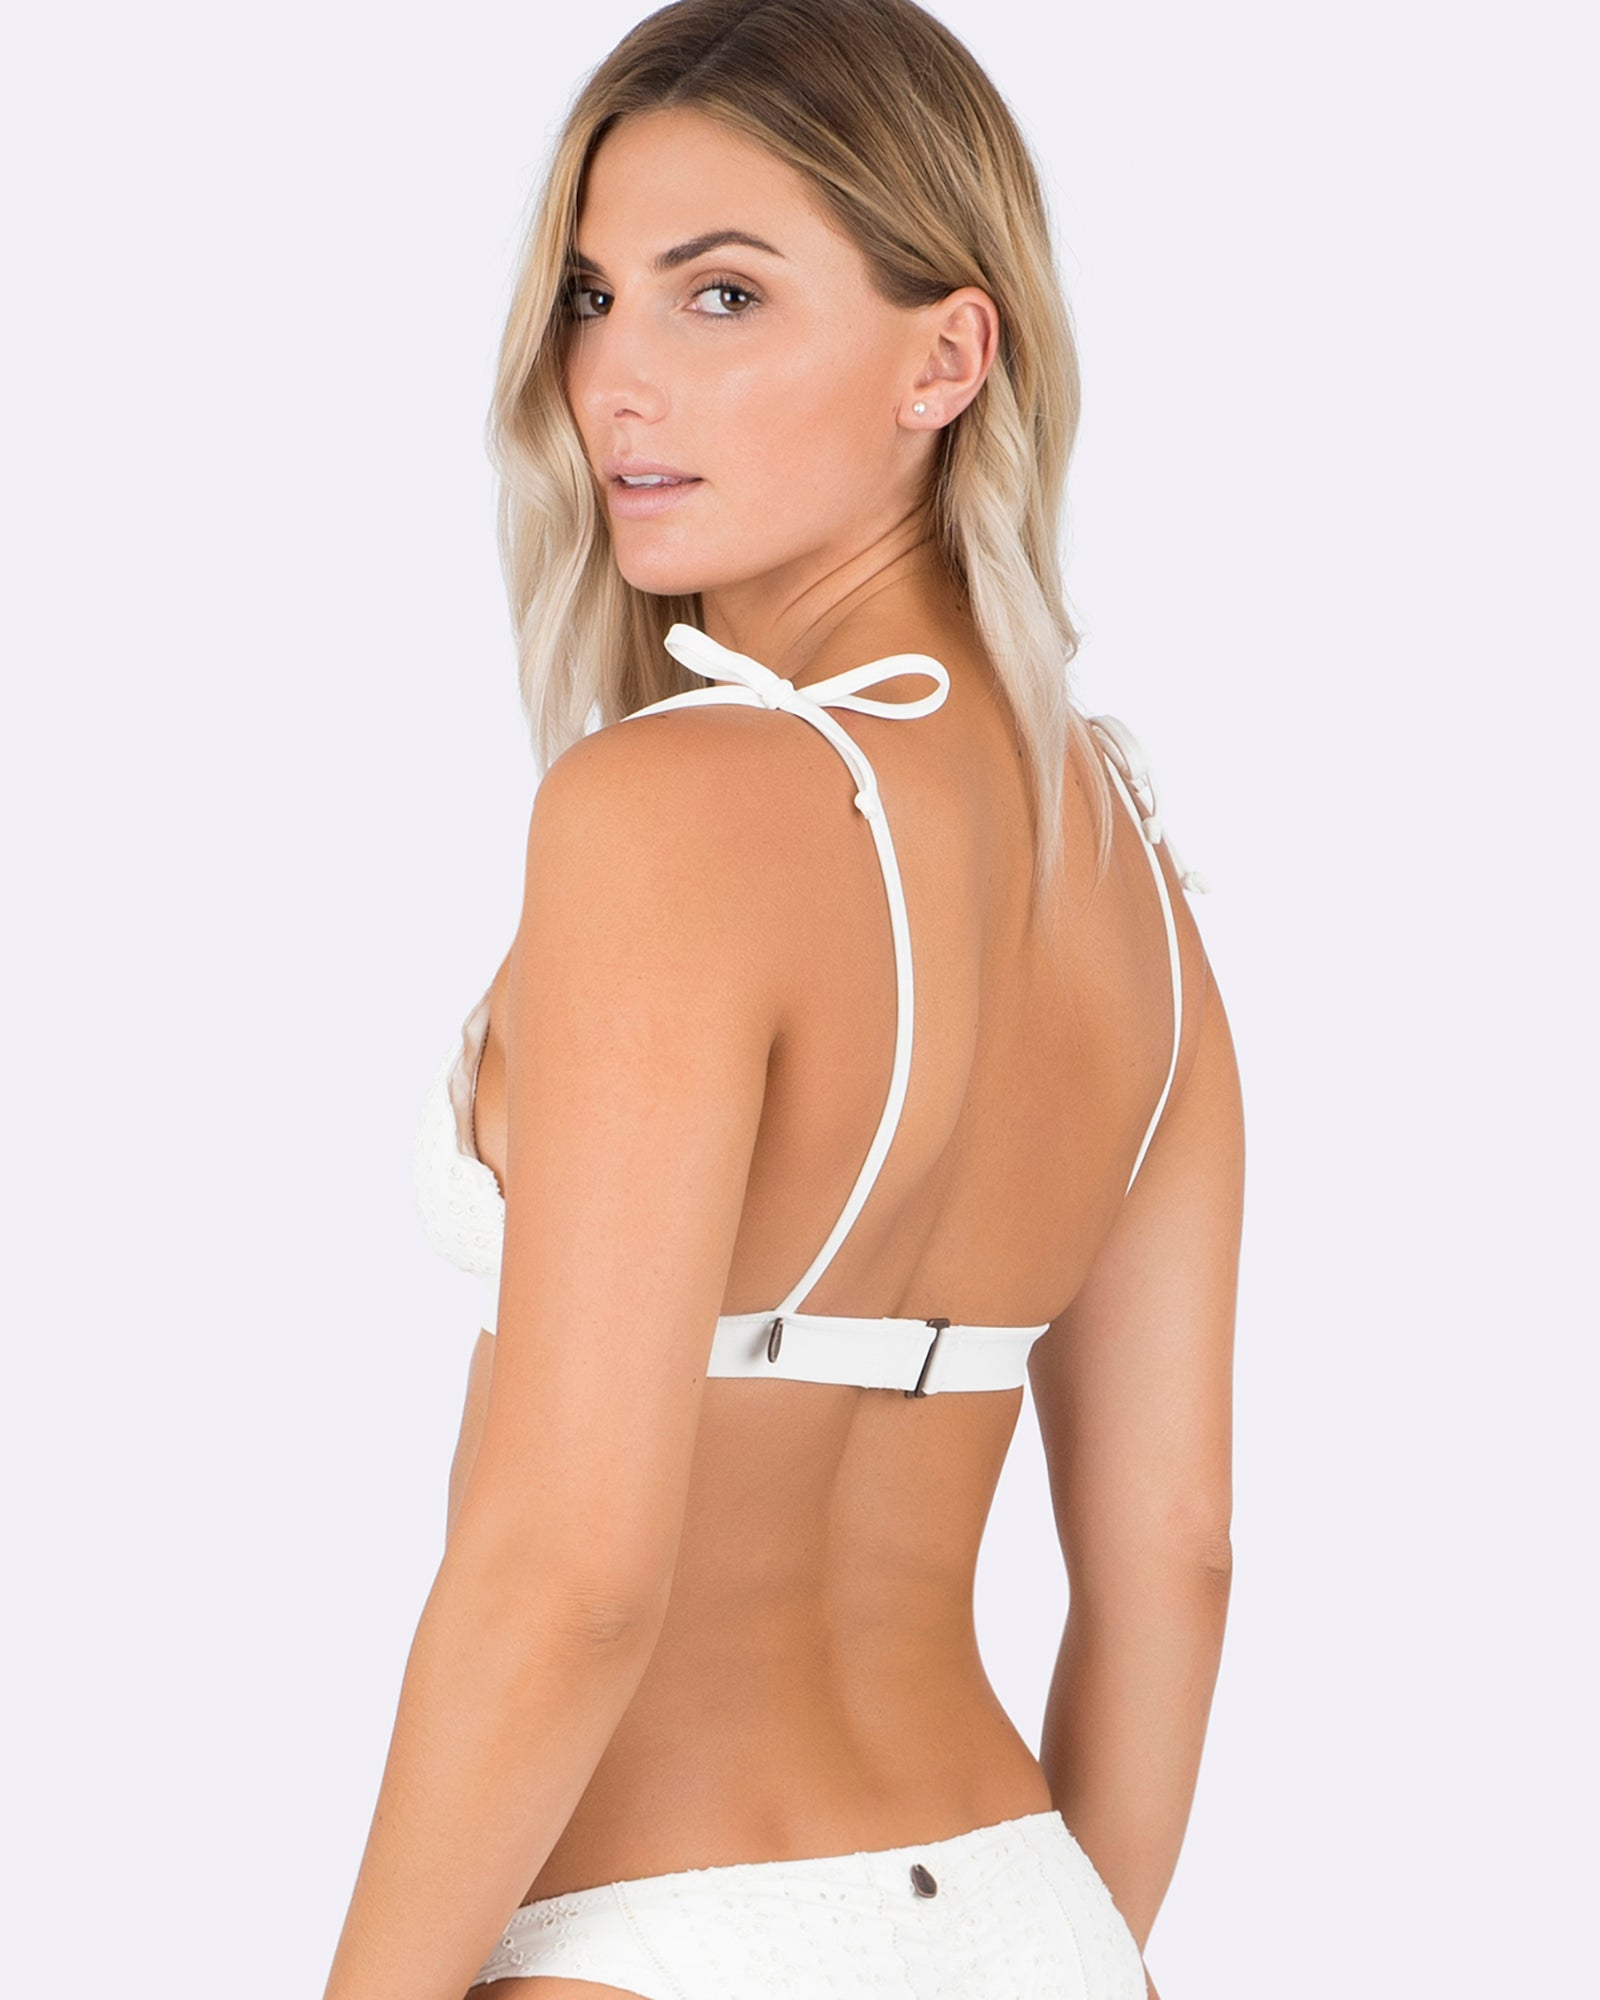 Indaia Swim Frienda top with shoulder ties